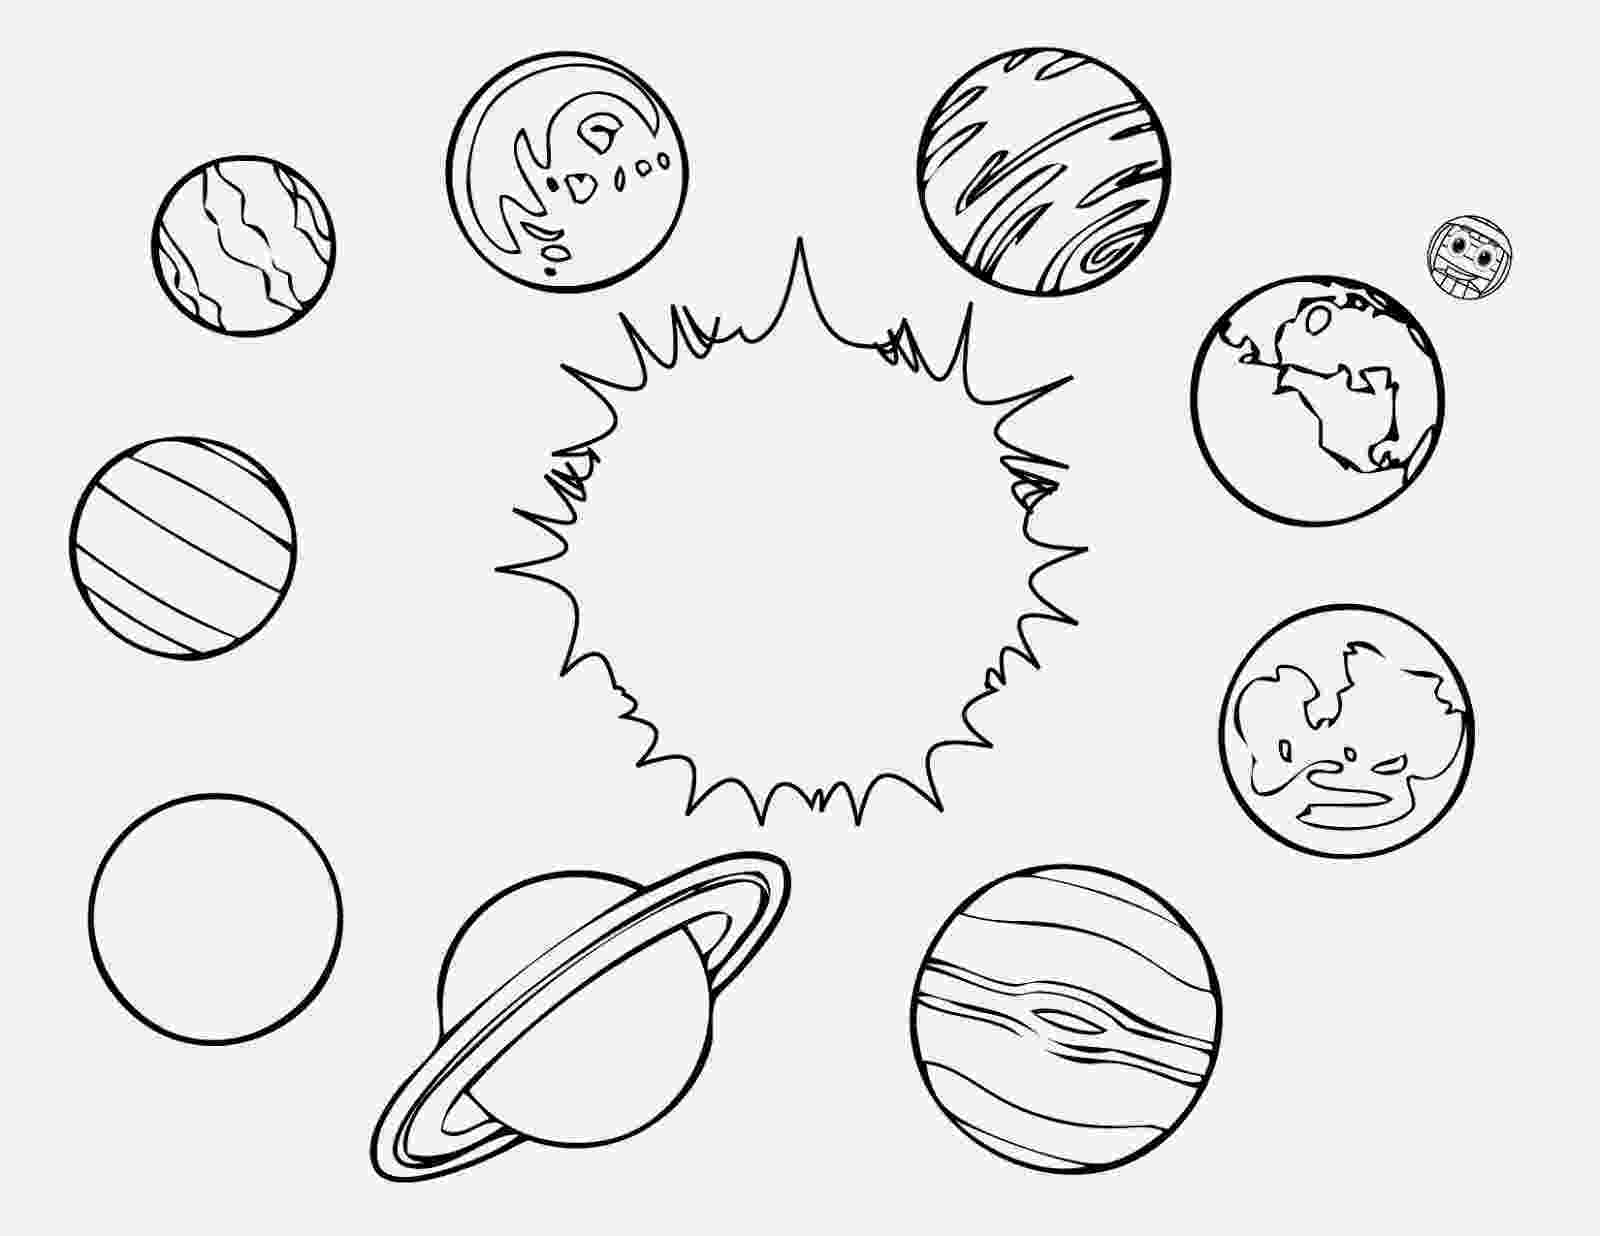 space coloring sheet space coloring pages to download and print for free coloring space sheet